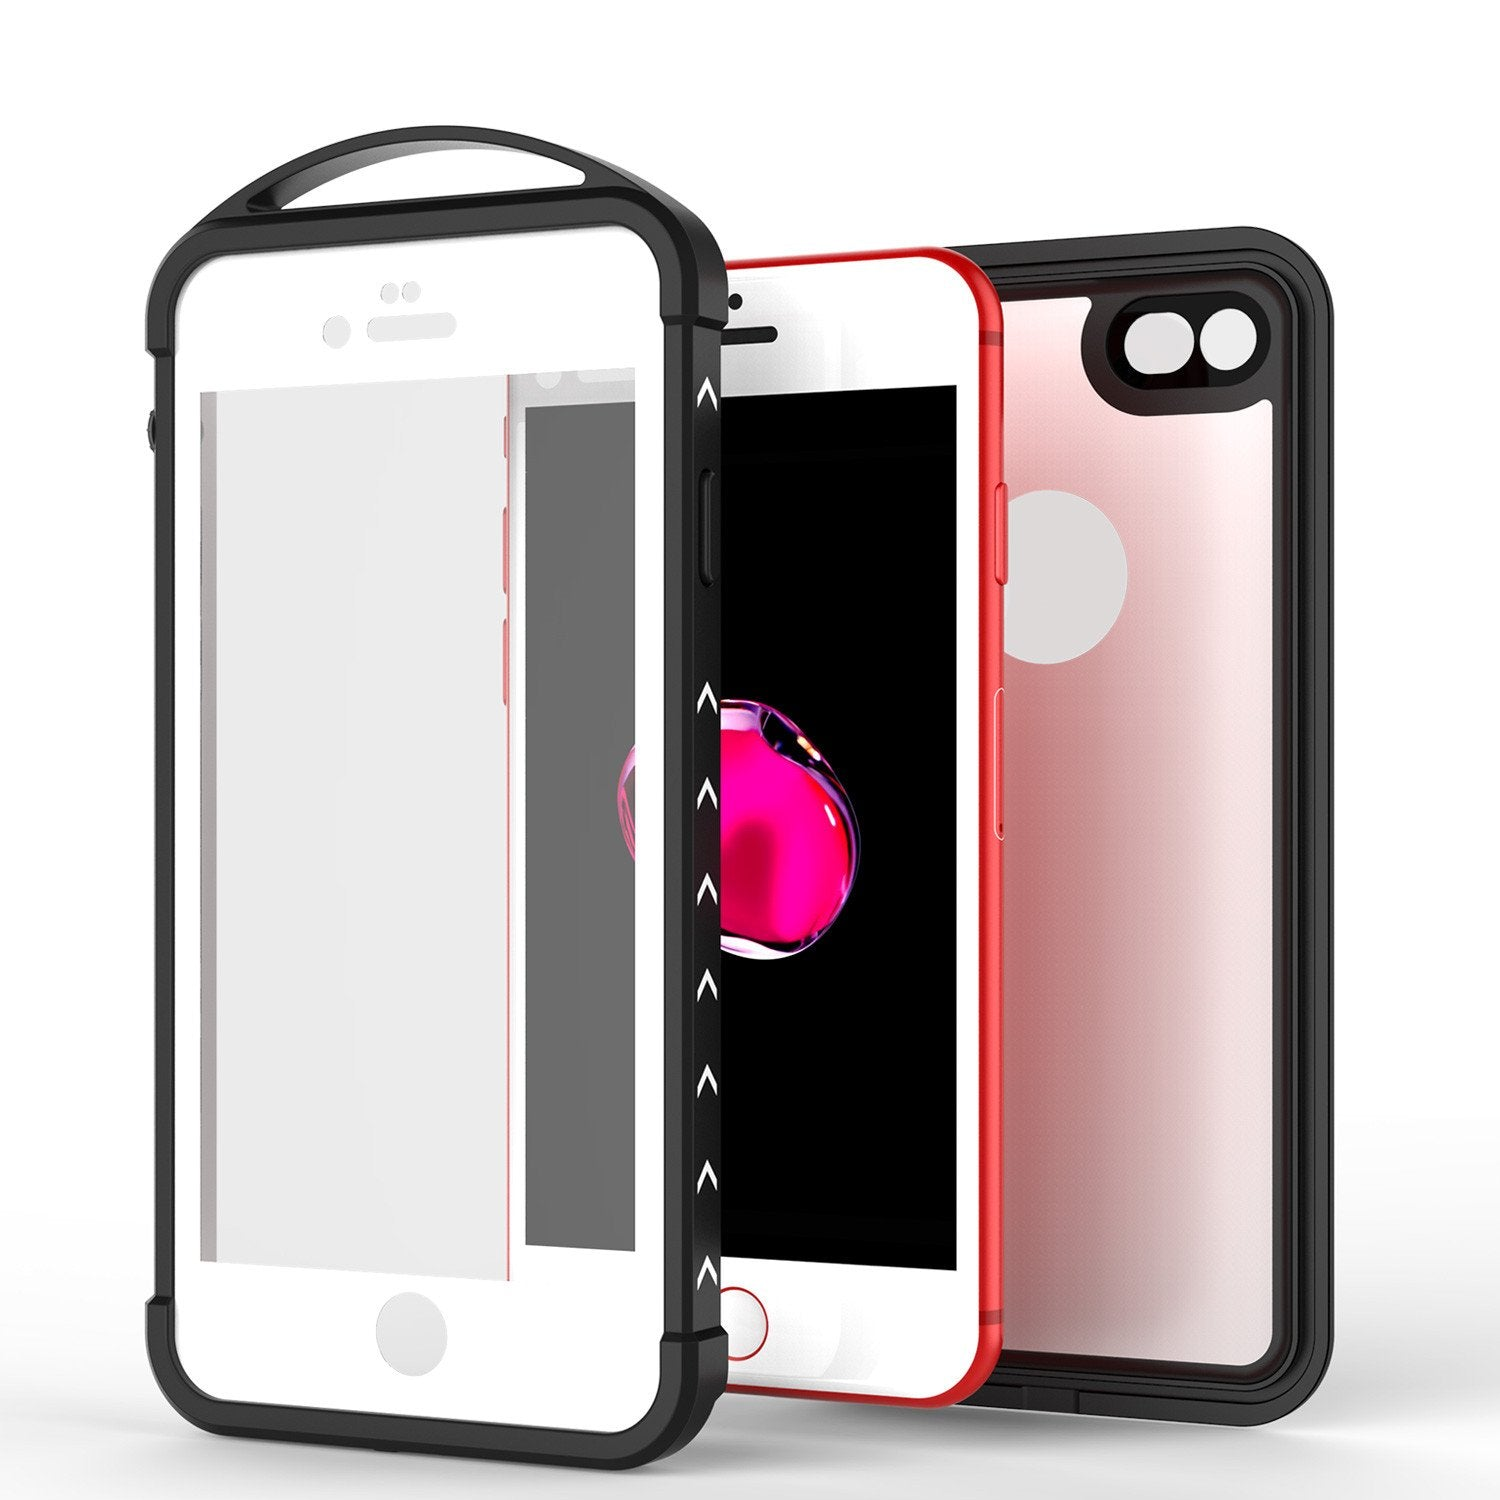 iPhone 8 Waterproof Case, Punkcase ALPINE Series, White | Heavy Duty Armor Cover